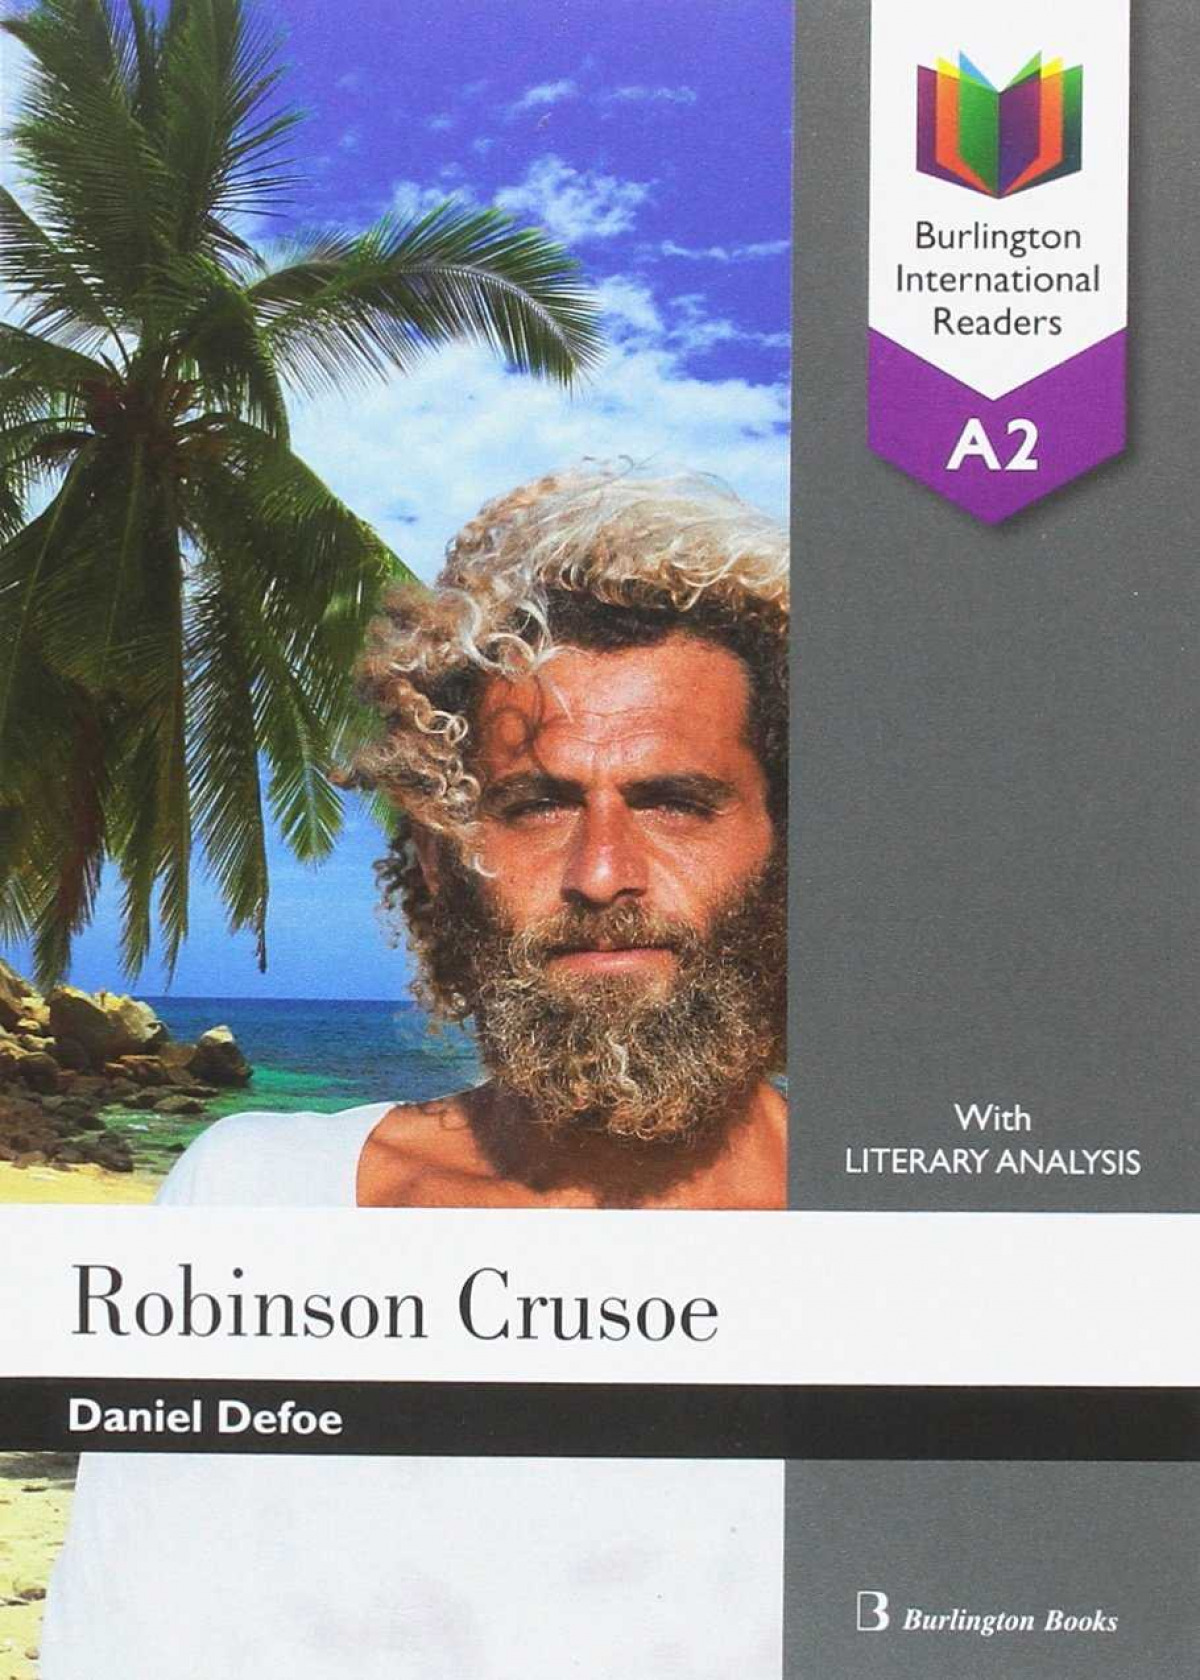 Robinson Crusoe A2 Burlington International Readers